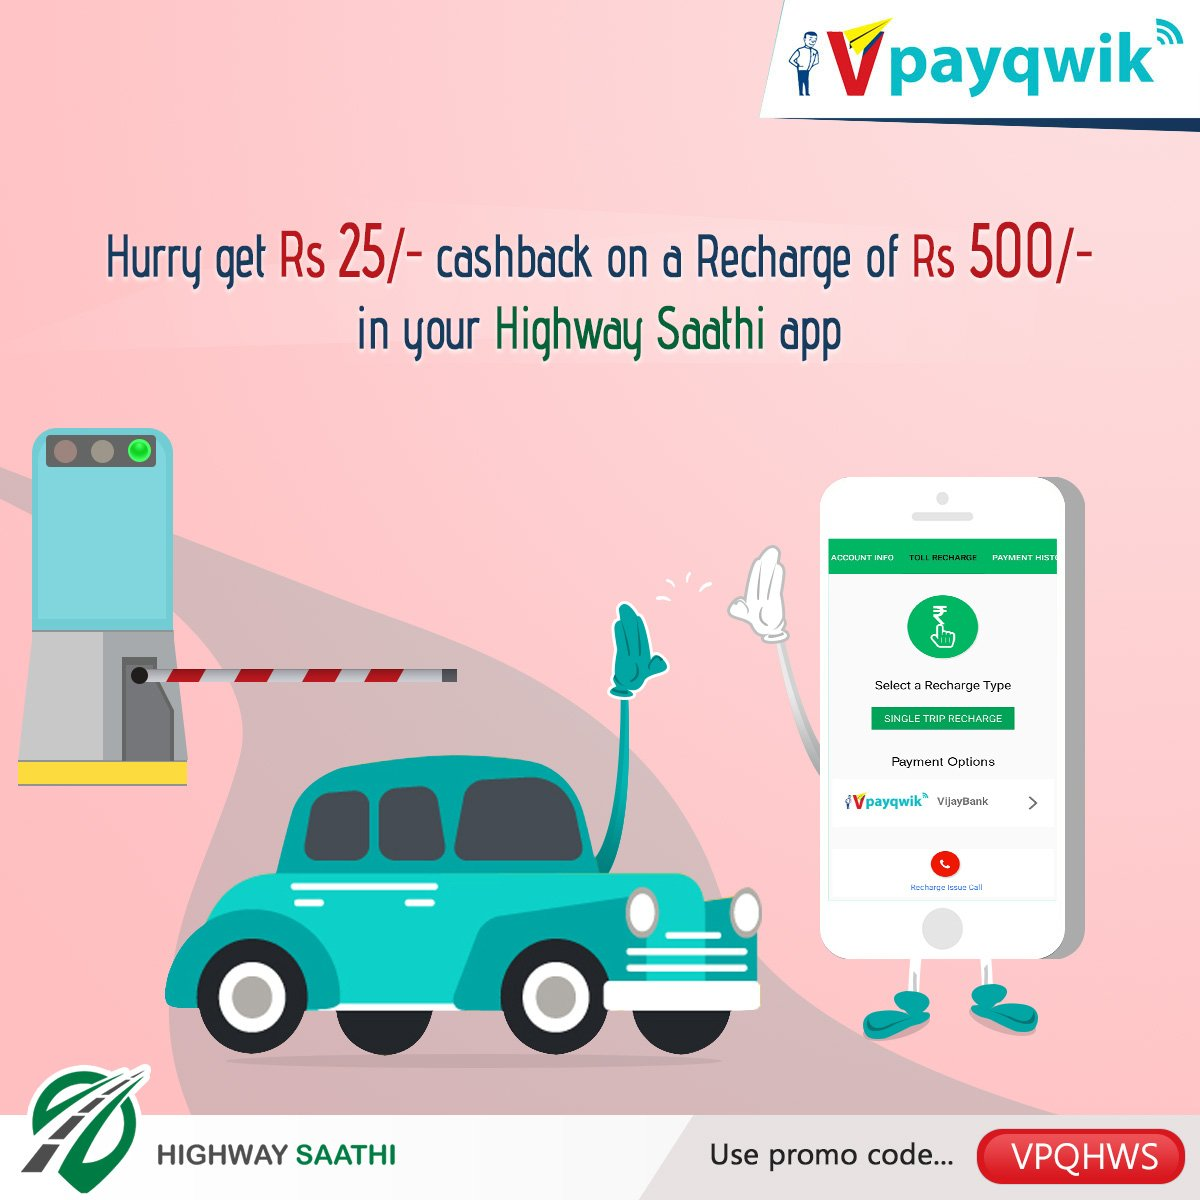 Hurry!  Avail Rs 25 cash back when you recharge your Highway Saathi from your VPayQwik wallet.  #VPayQwik #DigitalWallet #HighwaySaathi<br>http://pic.twitter.com/XMX86qSgQ2